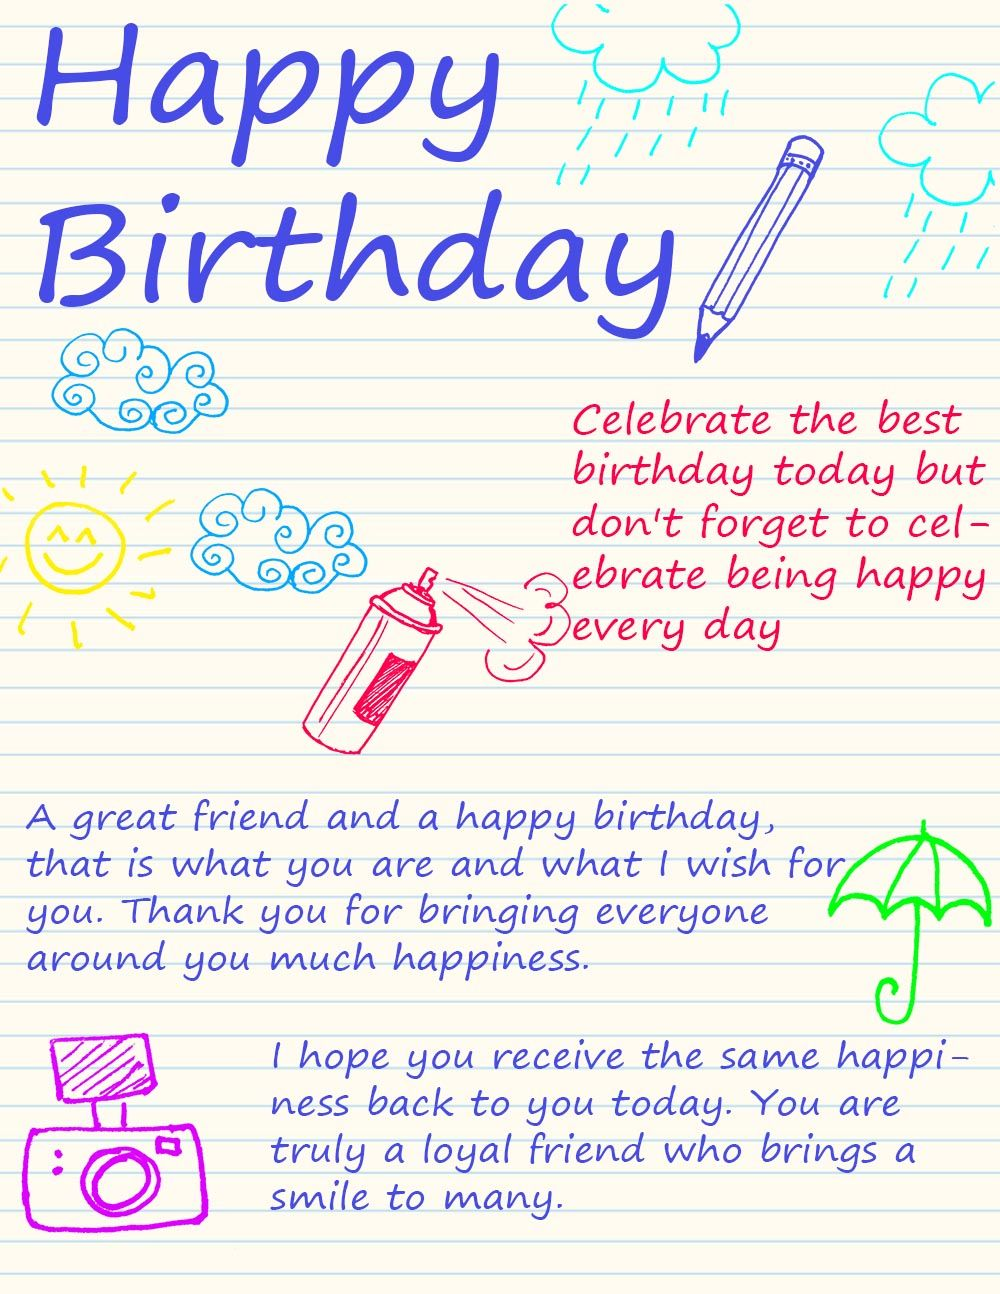 Birthday greetings for a friend tumblr choice image greeting happy birthday ecard happy birthday pinterest happy birthday happy birthday ecard kristyandbryce choice image bookmarktalkfo Gallery